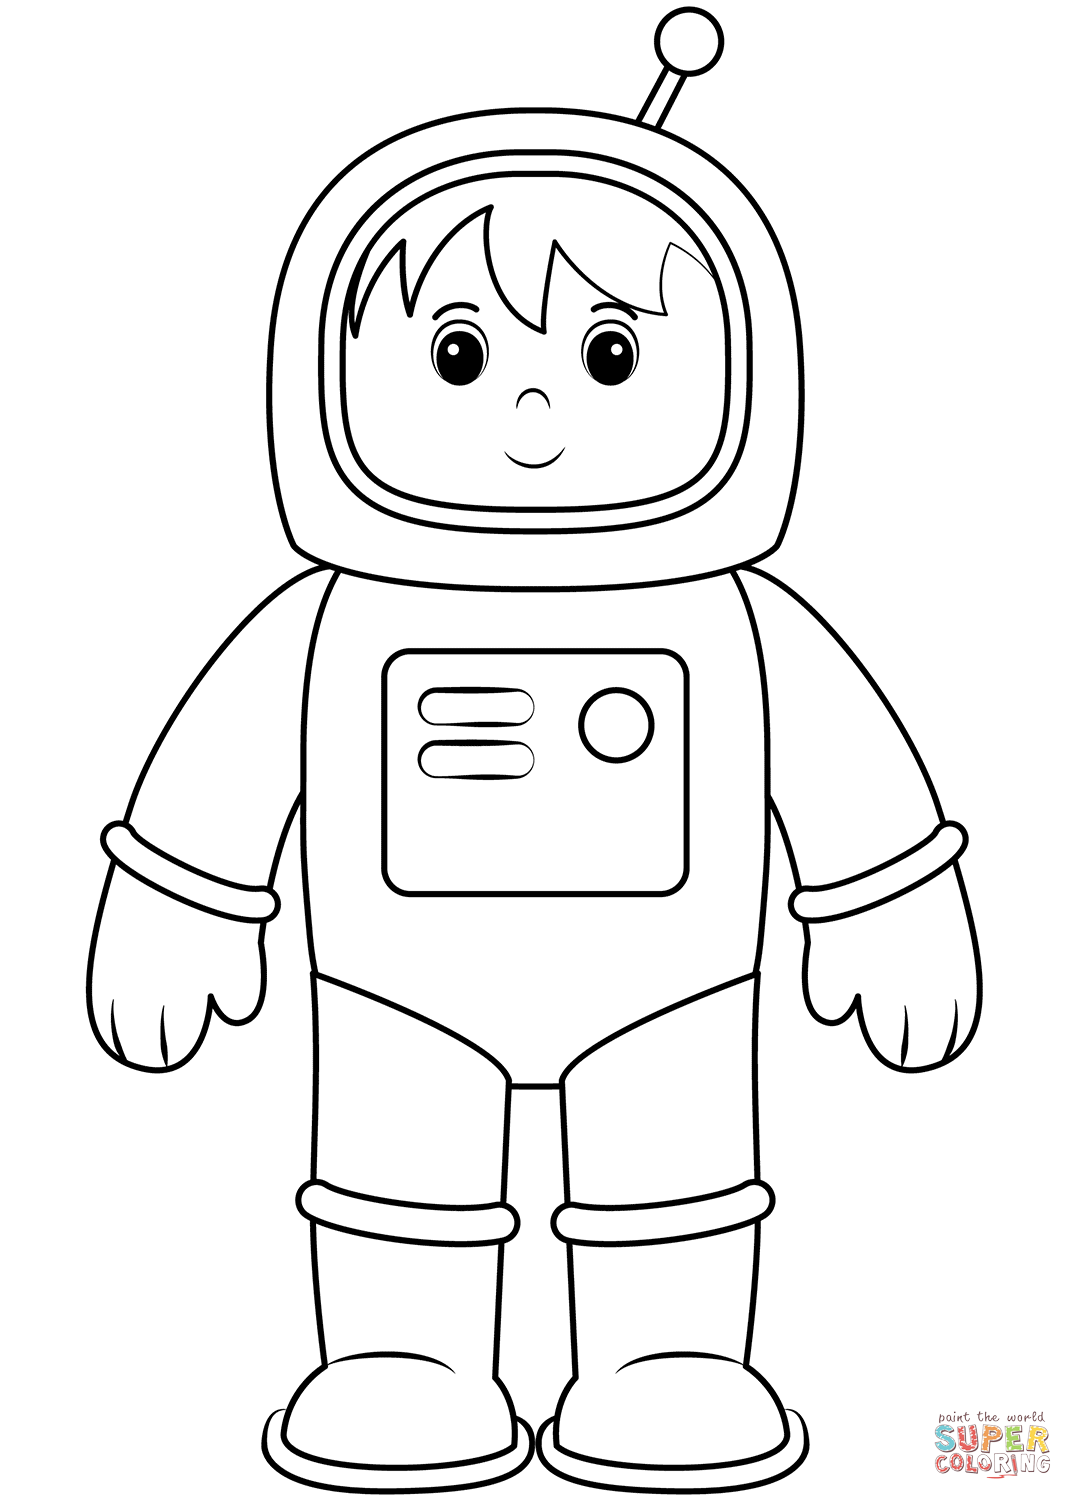 coloring picture of astronaut printable astronaut coloring pages for kids coloring astronaut picture of